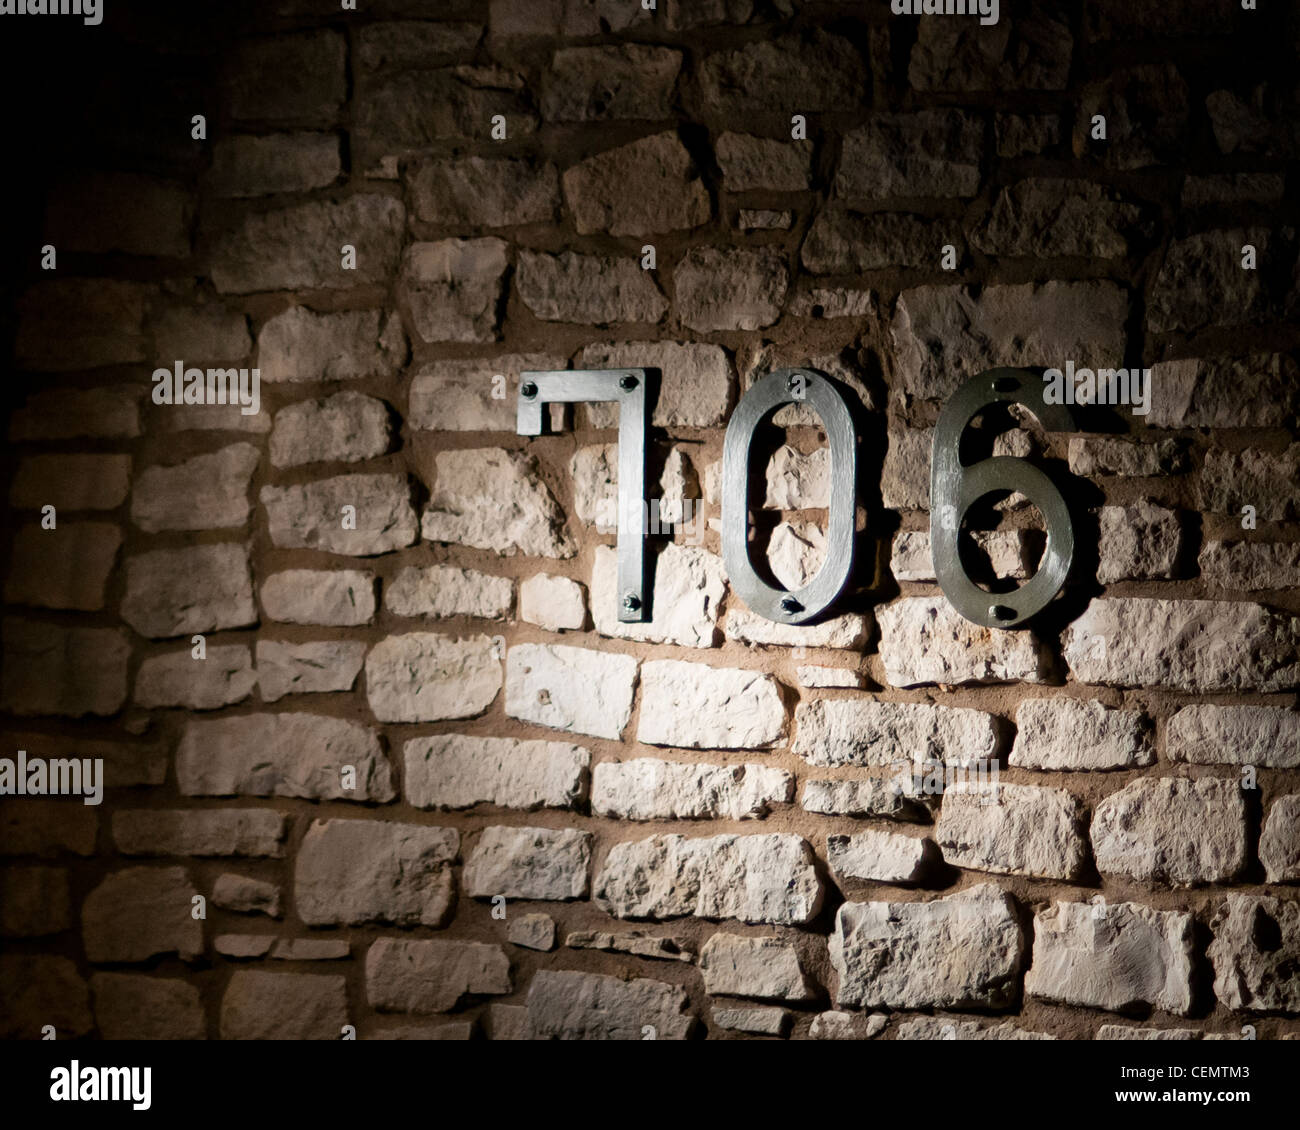 706 building number against rock wall - Stock Image